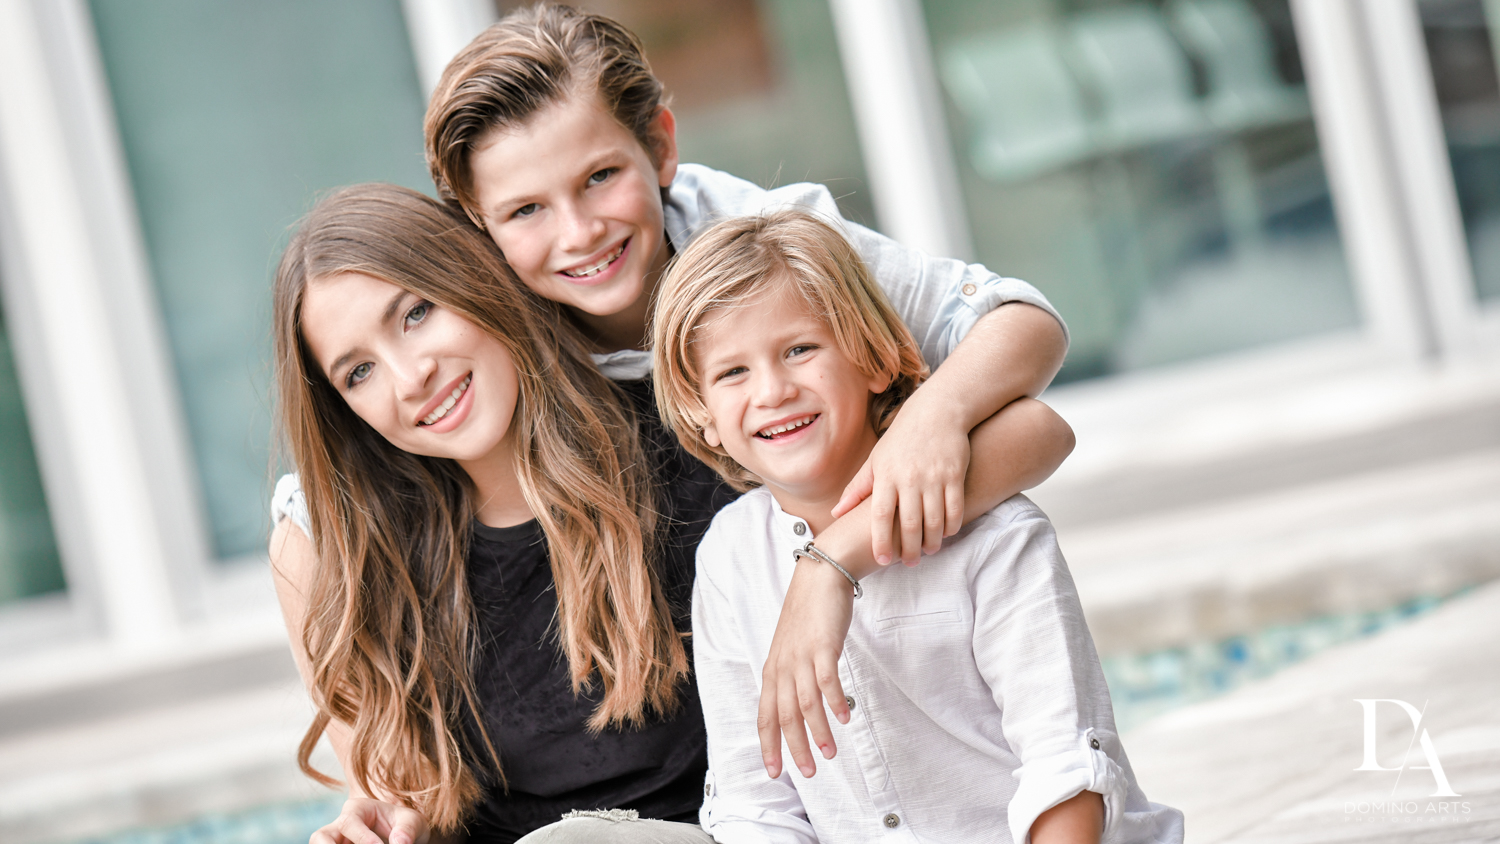 Siblings at Waterfront Photo Session in Miami by Domino Arts Photography